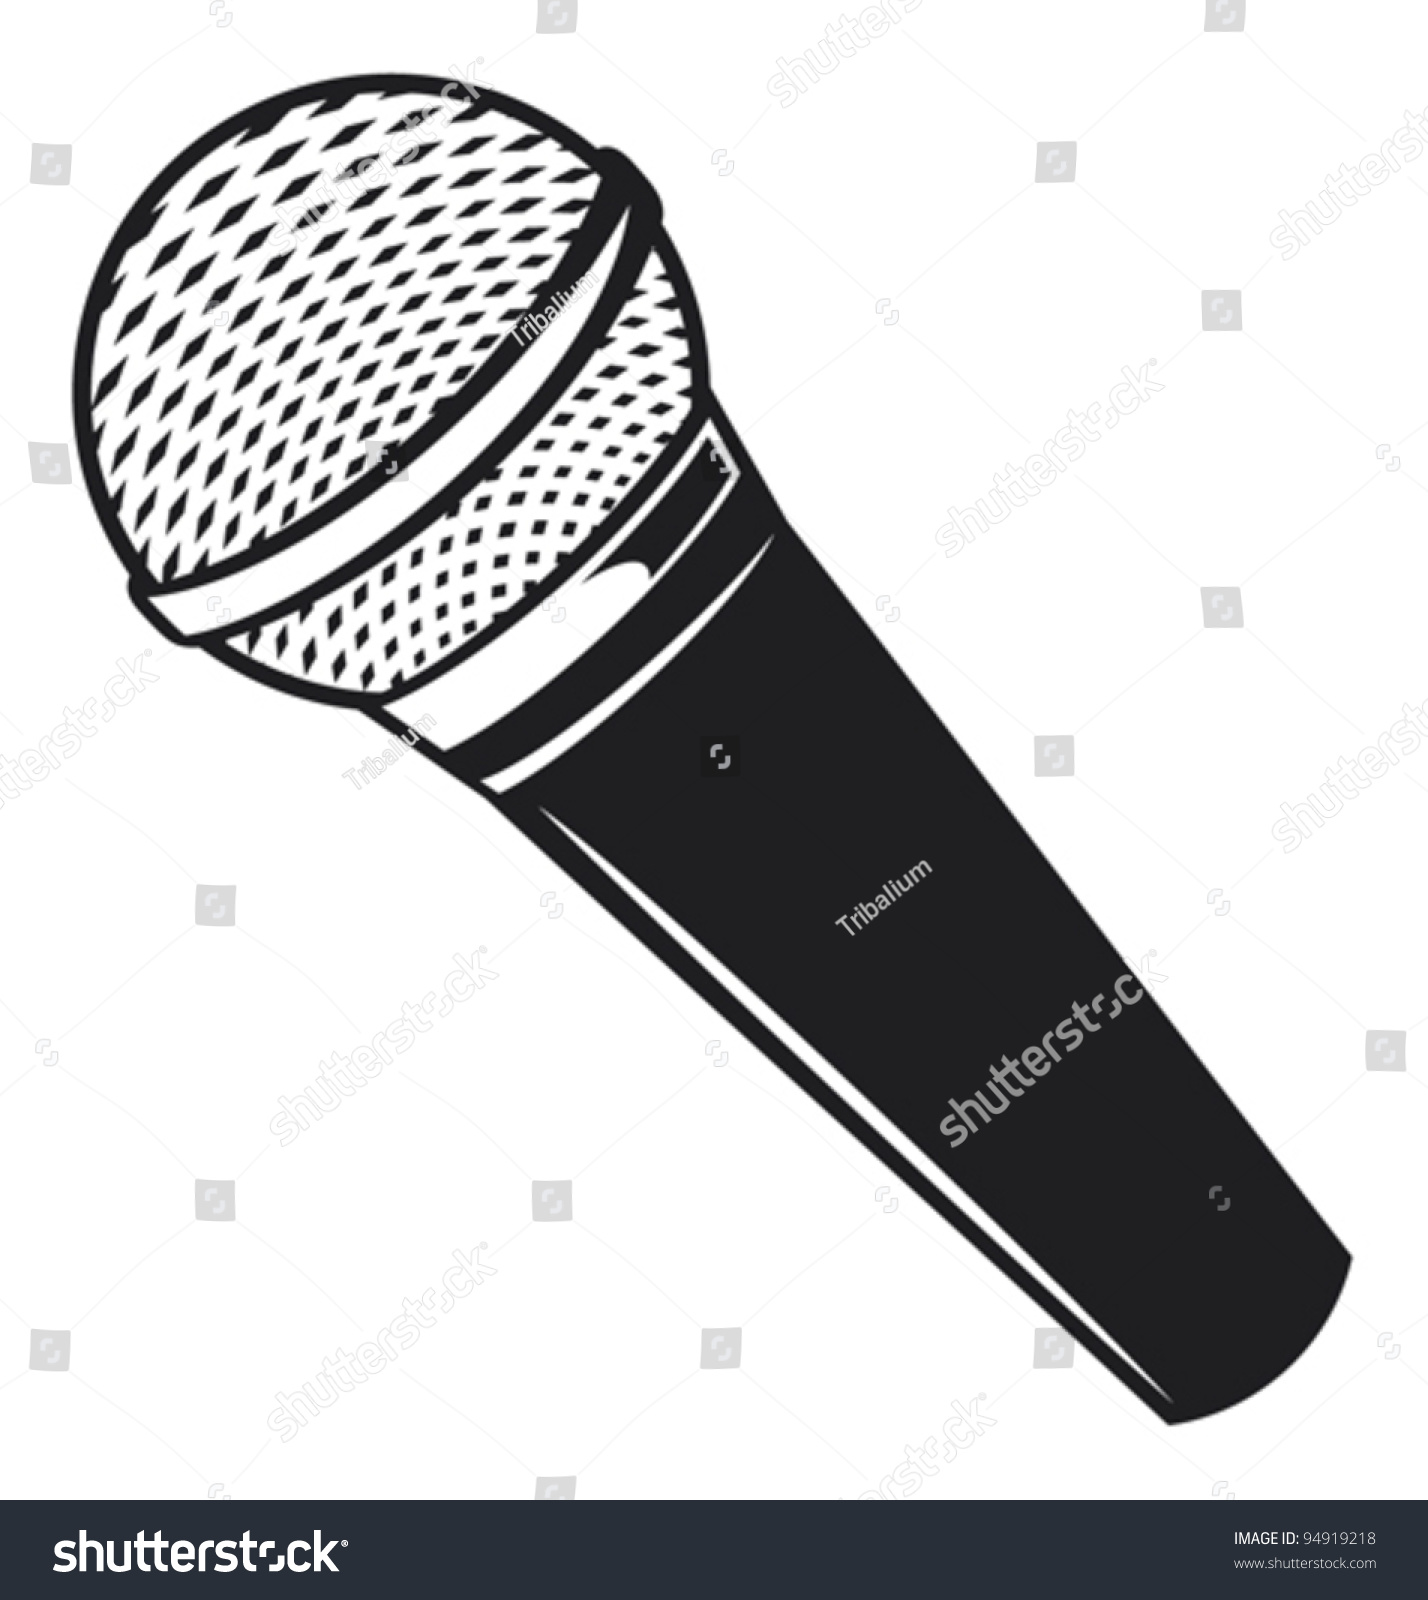 Microphone Clipart Black And White.